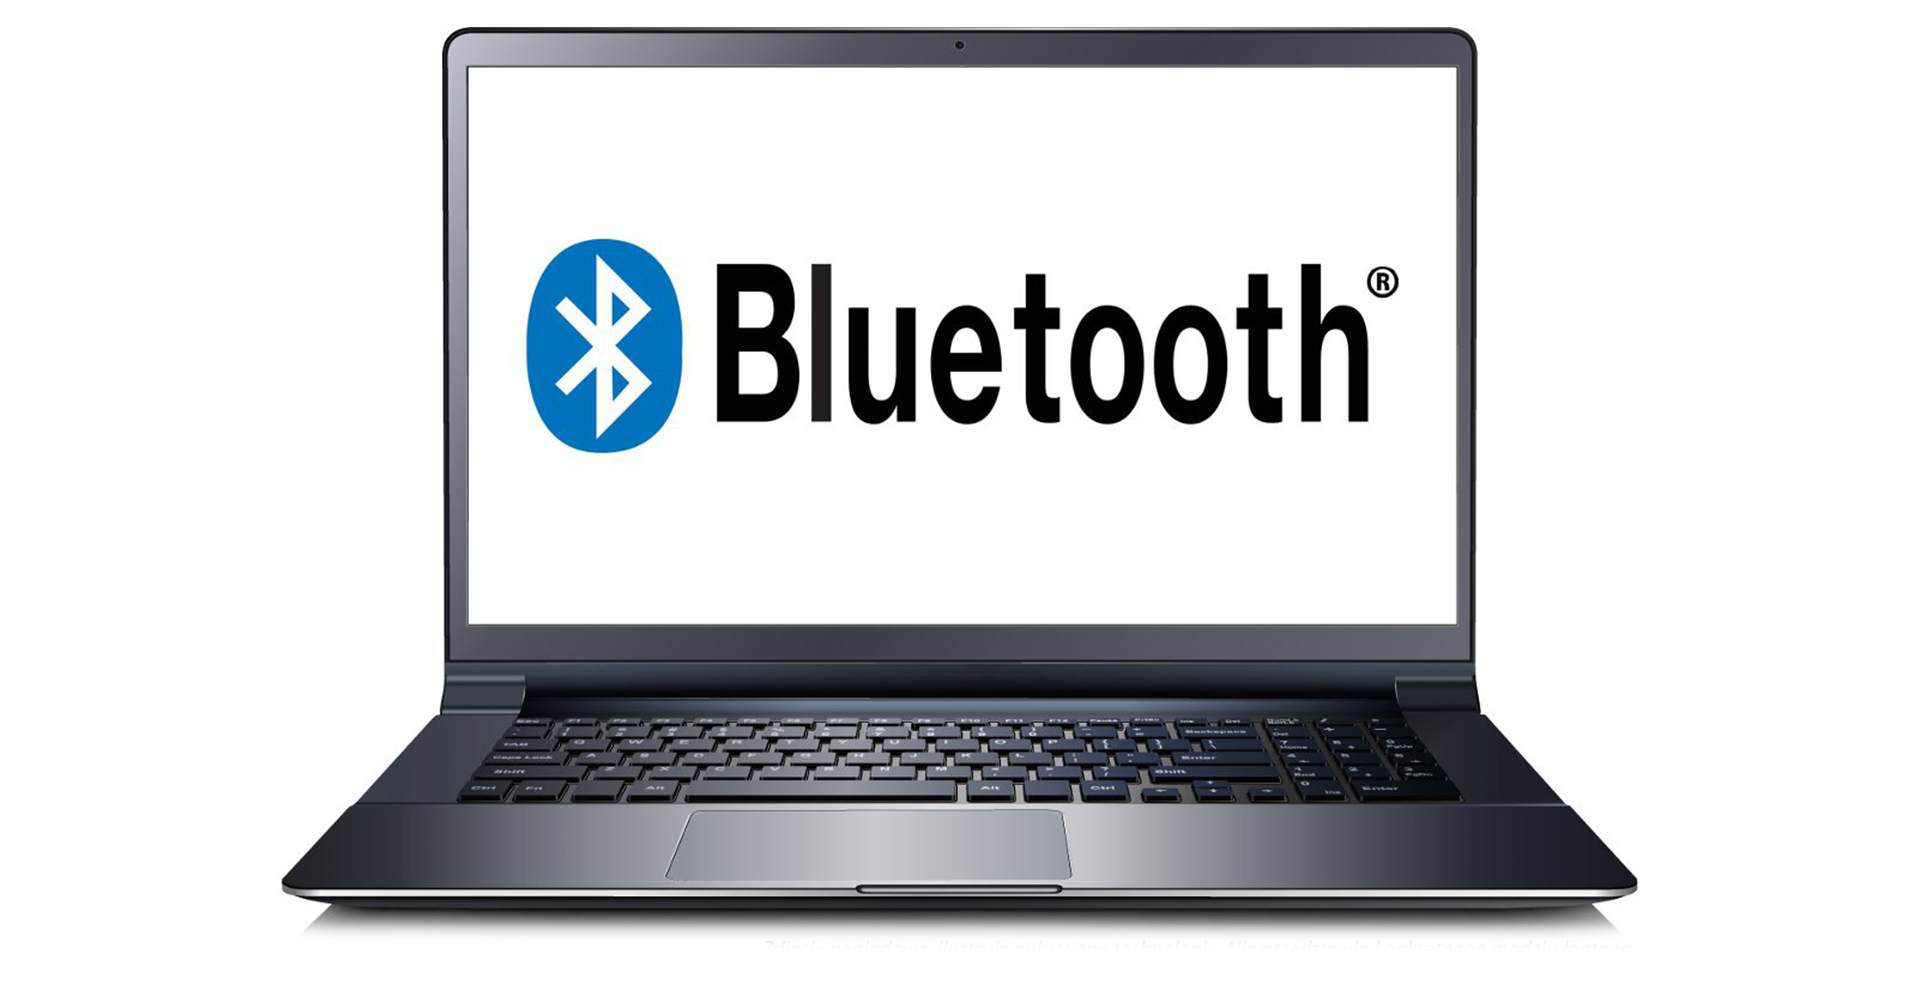 TOSHIBA TECRA PS463E-07D05NG3                             Bluetooth